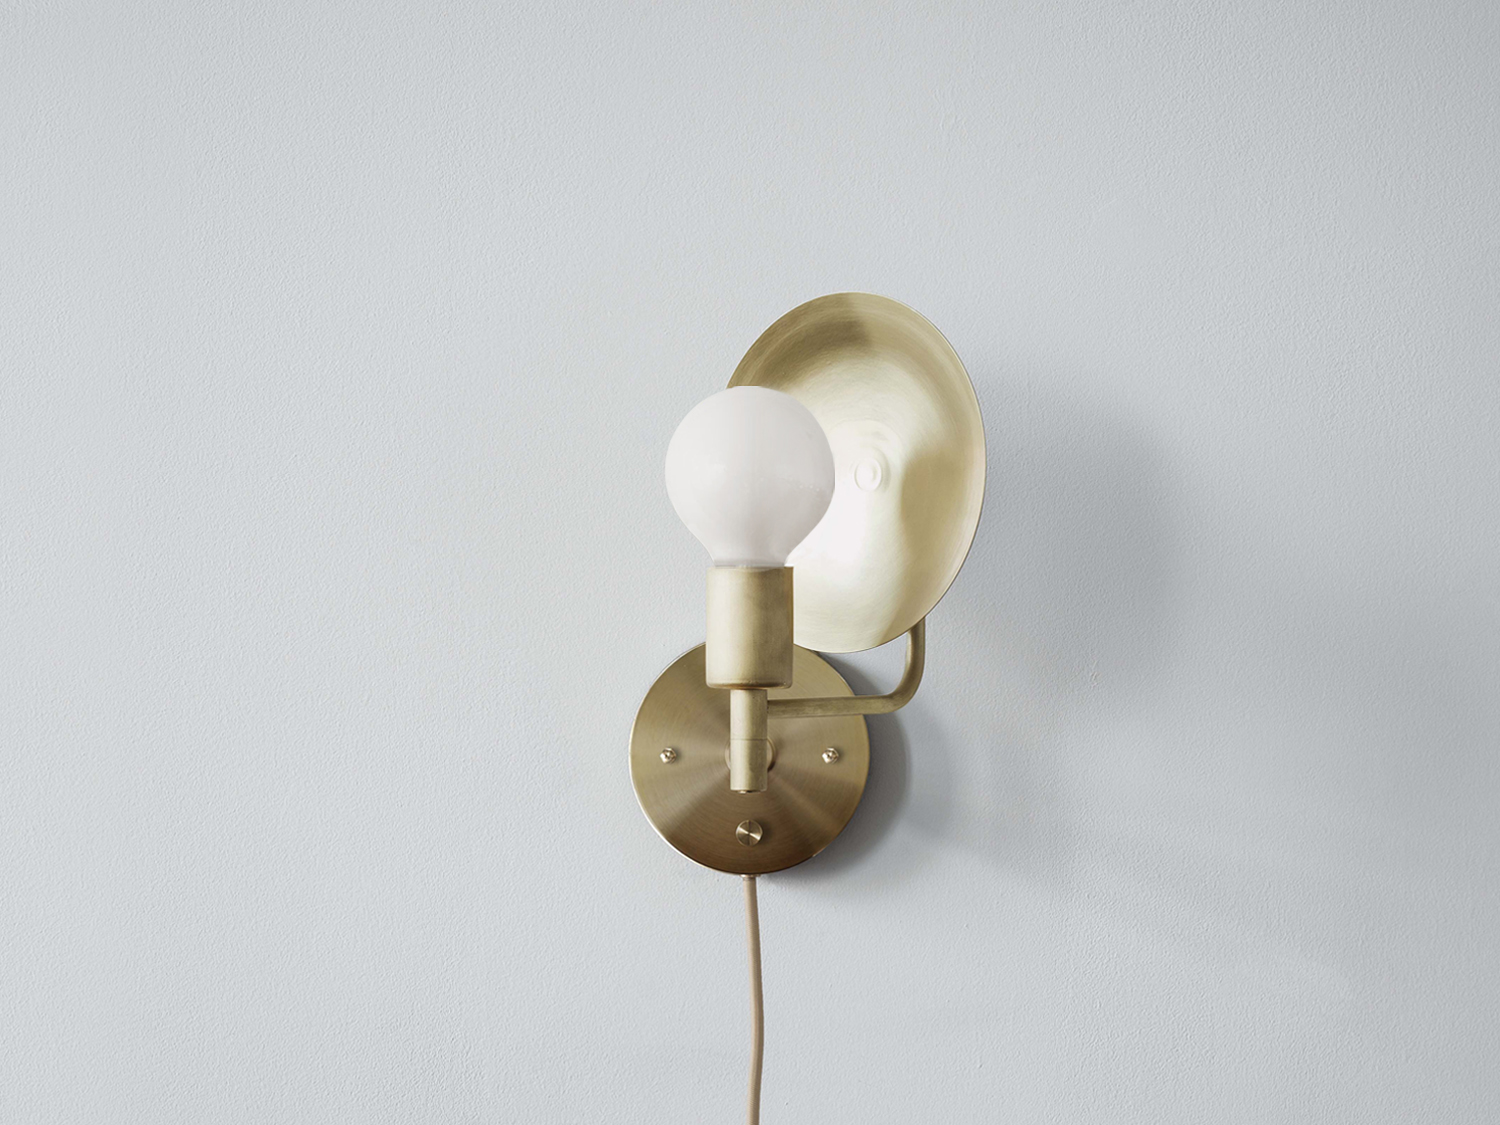 gallery image for Orbit Sconce